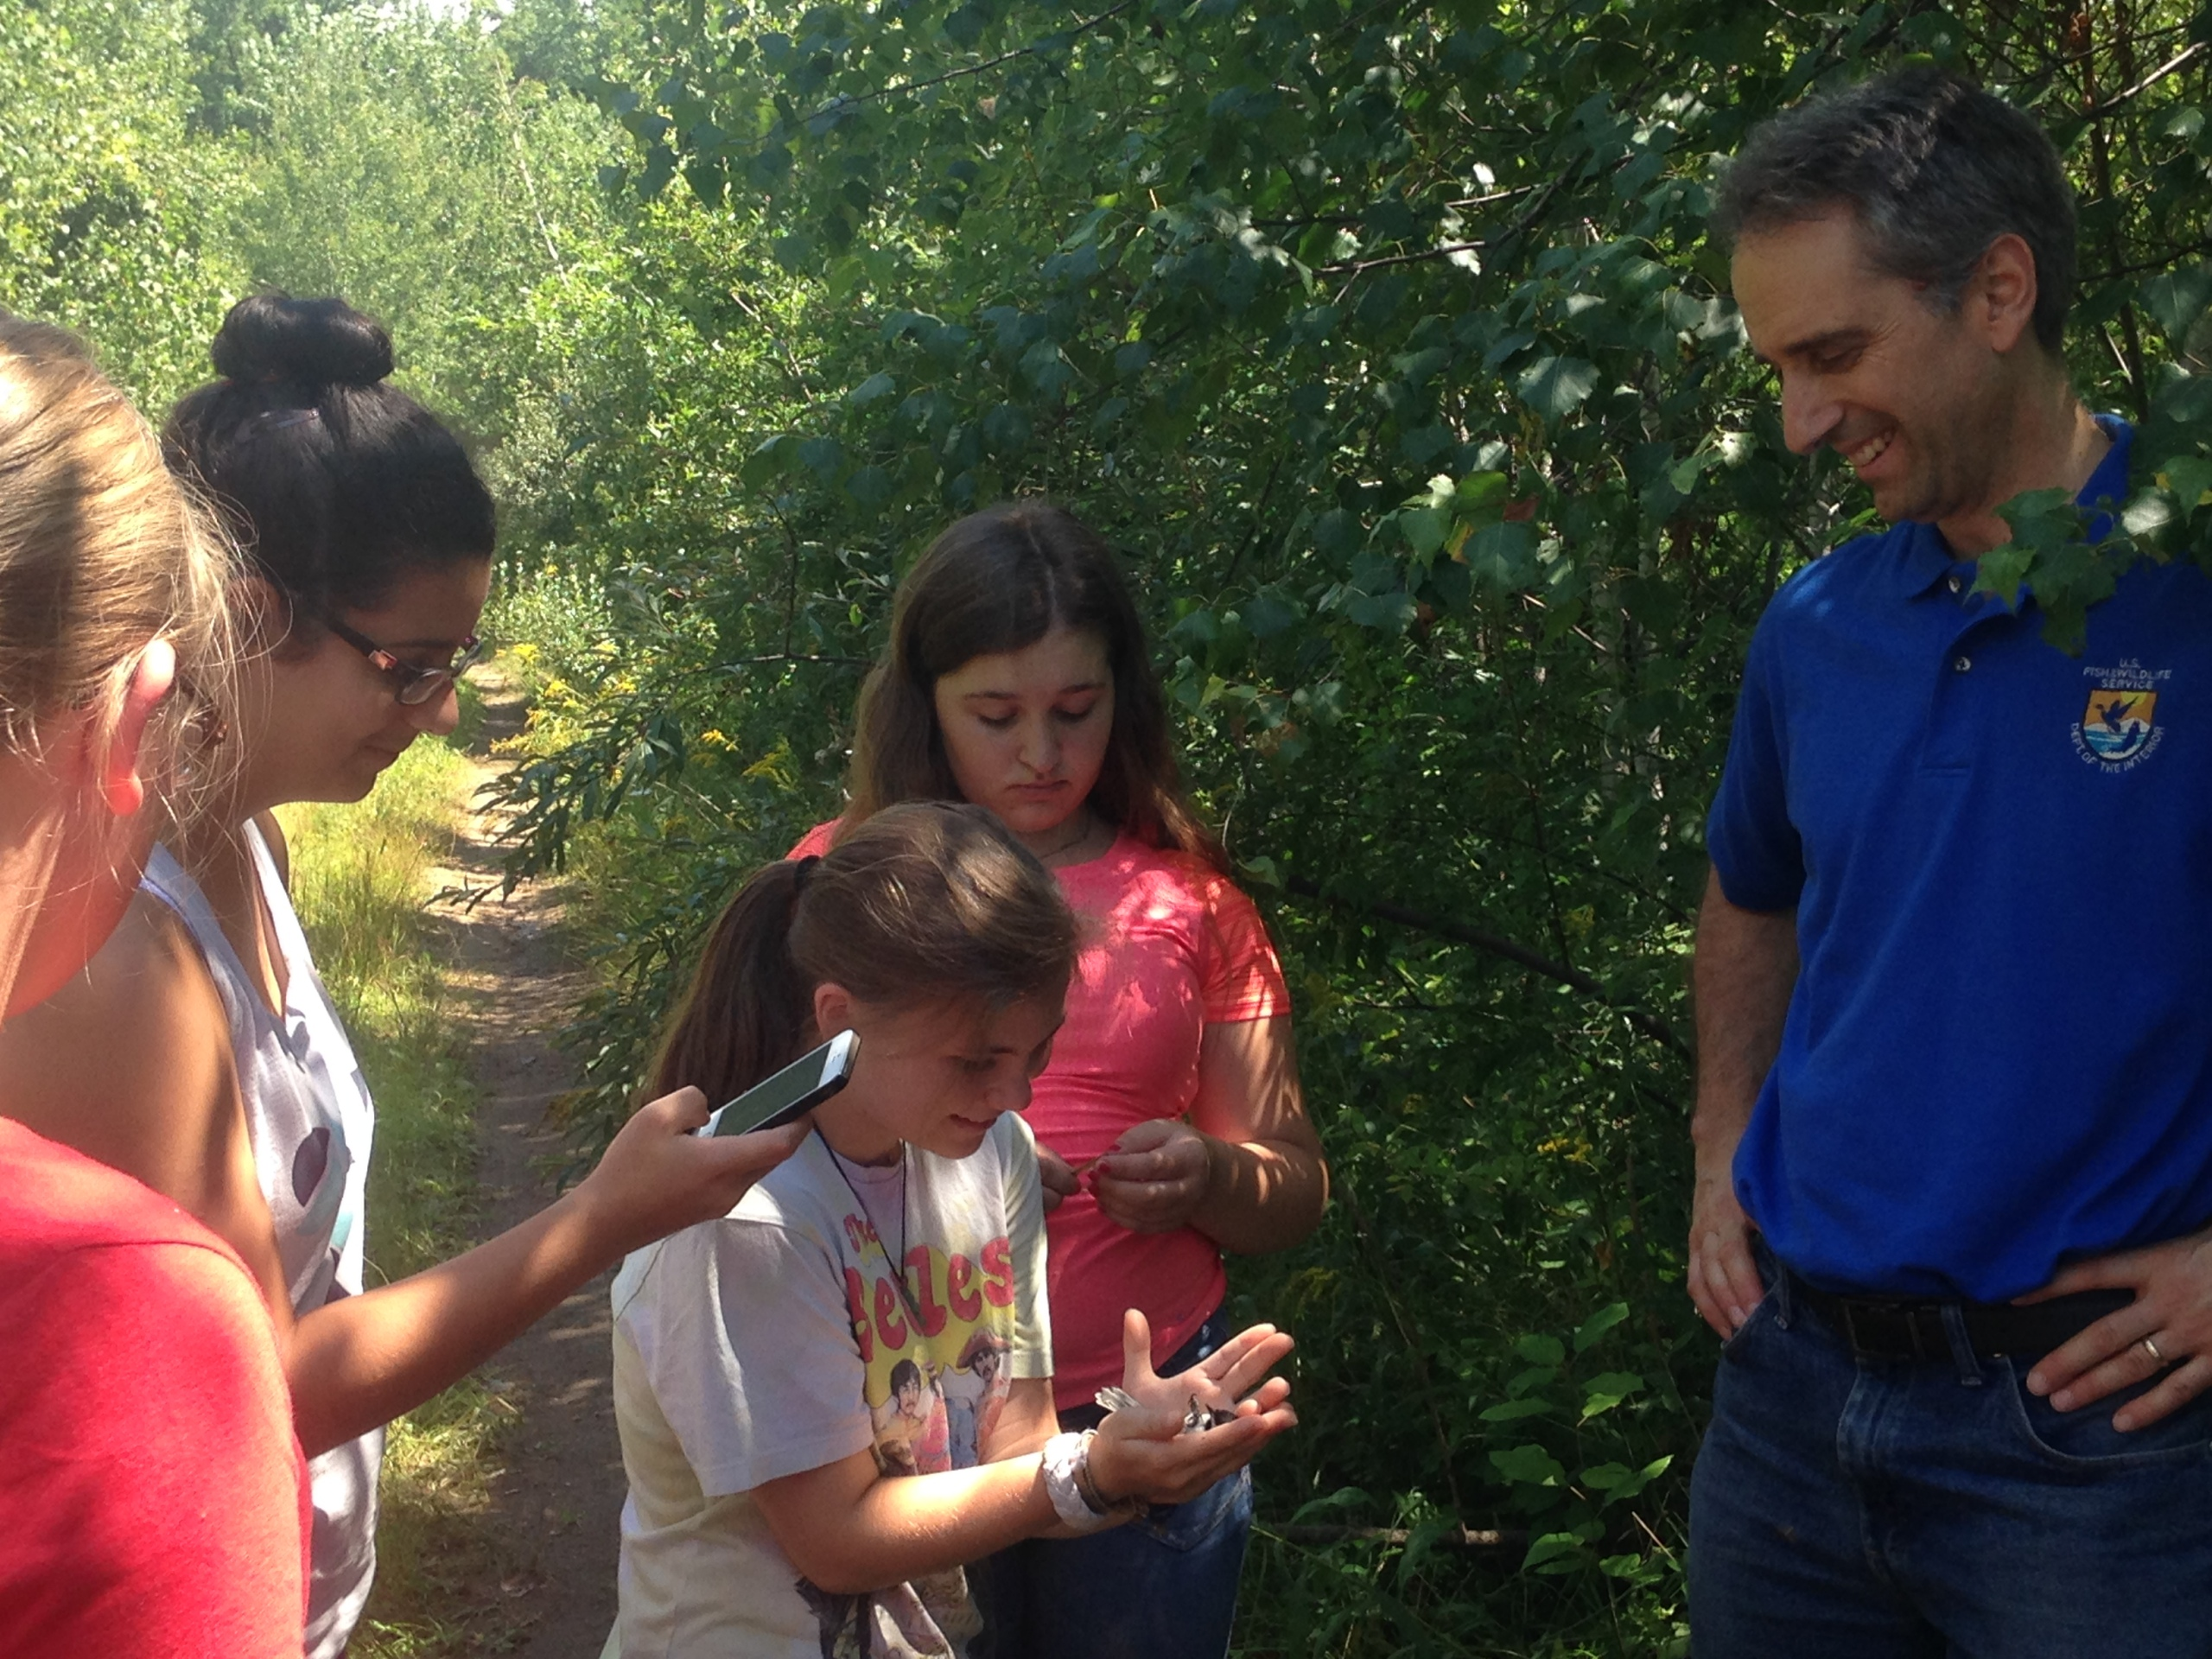 Dr. Randy Dettmers, wildlife biologist at U.S. Fish and Wildlife Service, teaches high school girls about bird conservation techniquest at Silvio O. Conte National Wildlife Refuge.